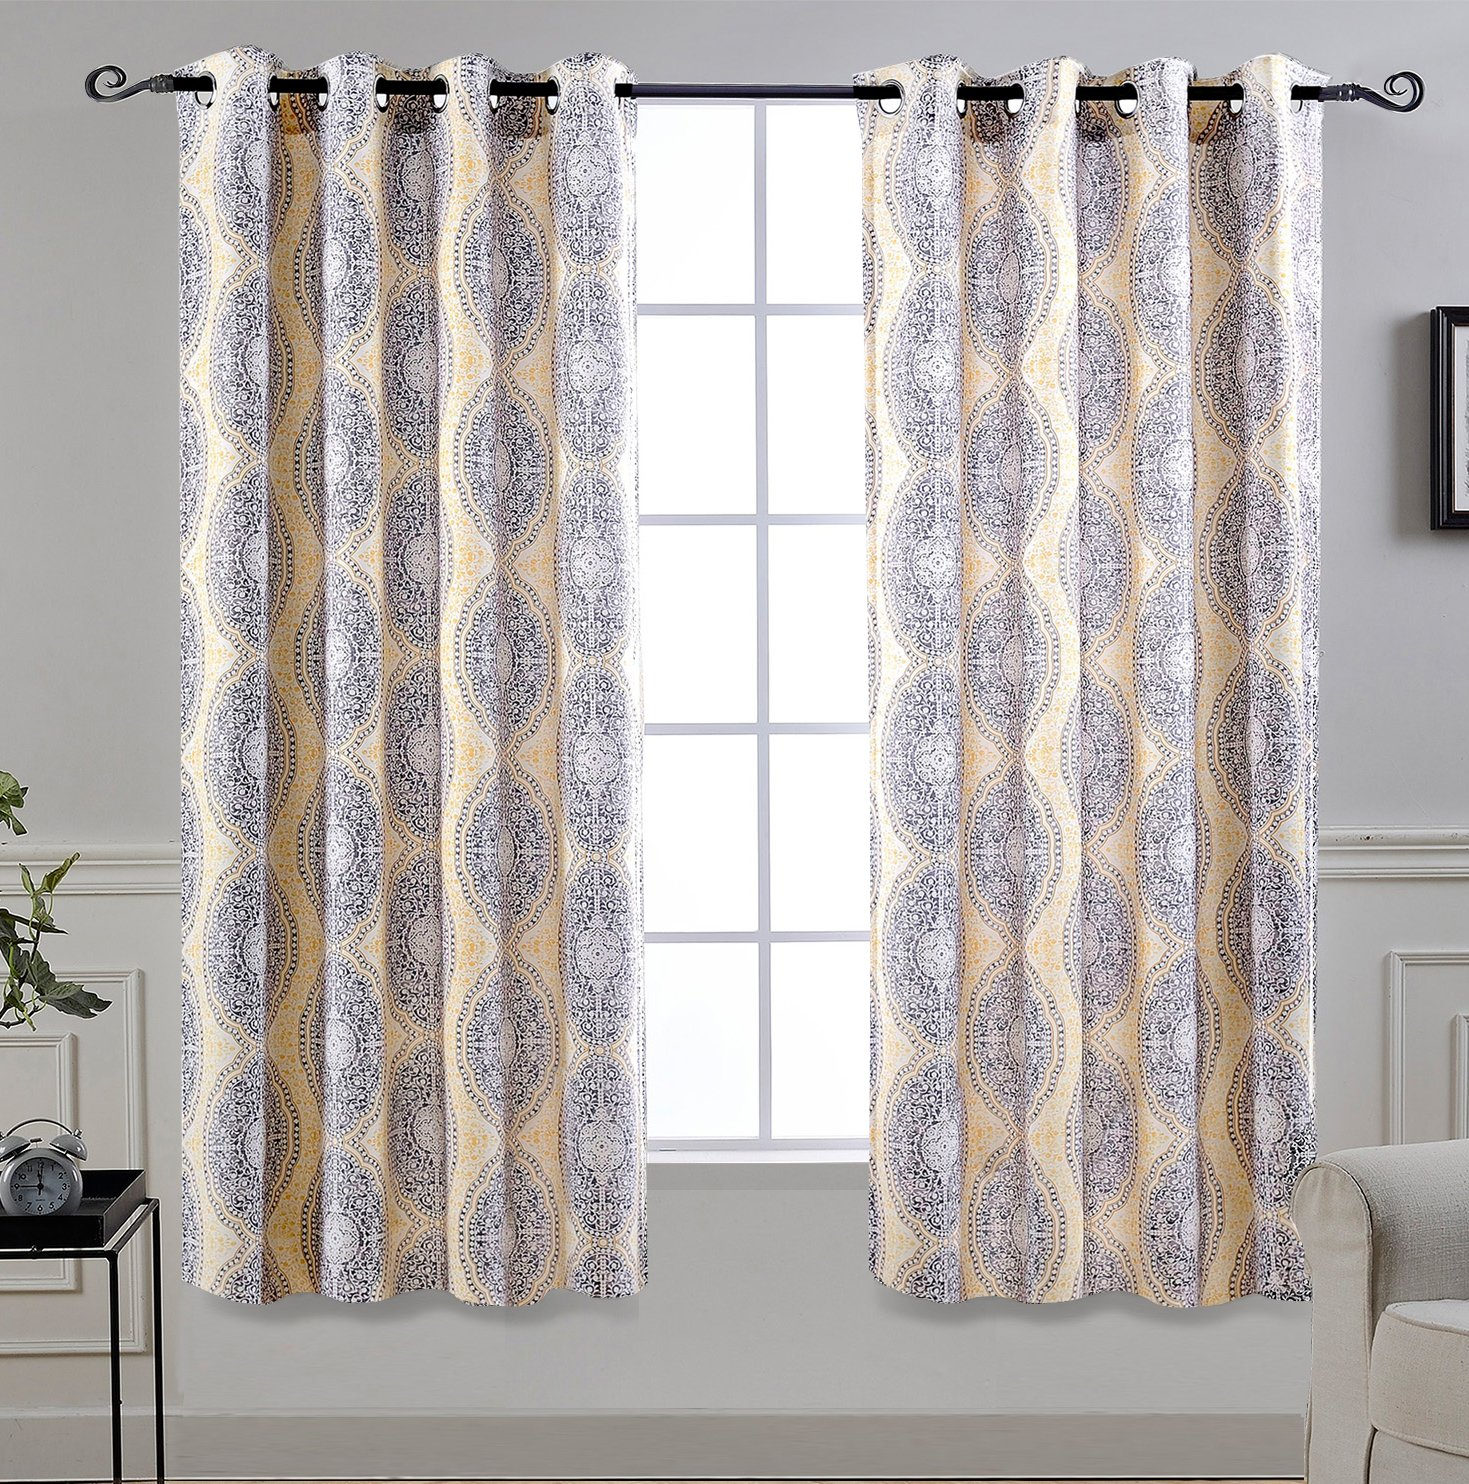 DriftAway Adrianne Thermal and Room Darkening Grommet Unlined Window Curtains Set of 2 Panels Each 52 Inch by 63 Inch Yellow and Gray